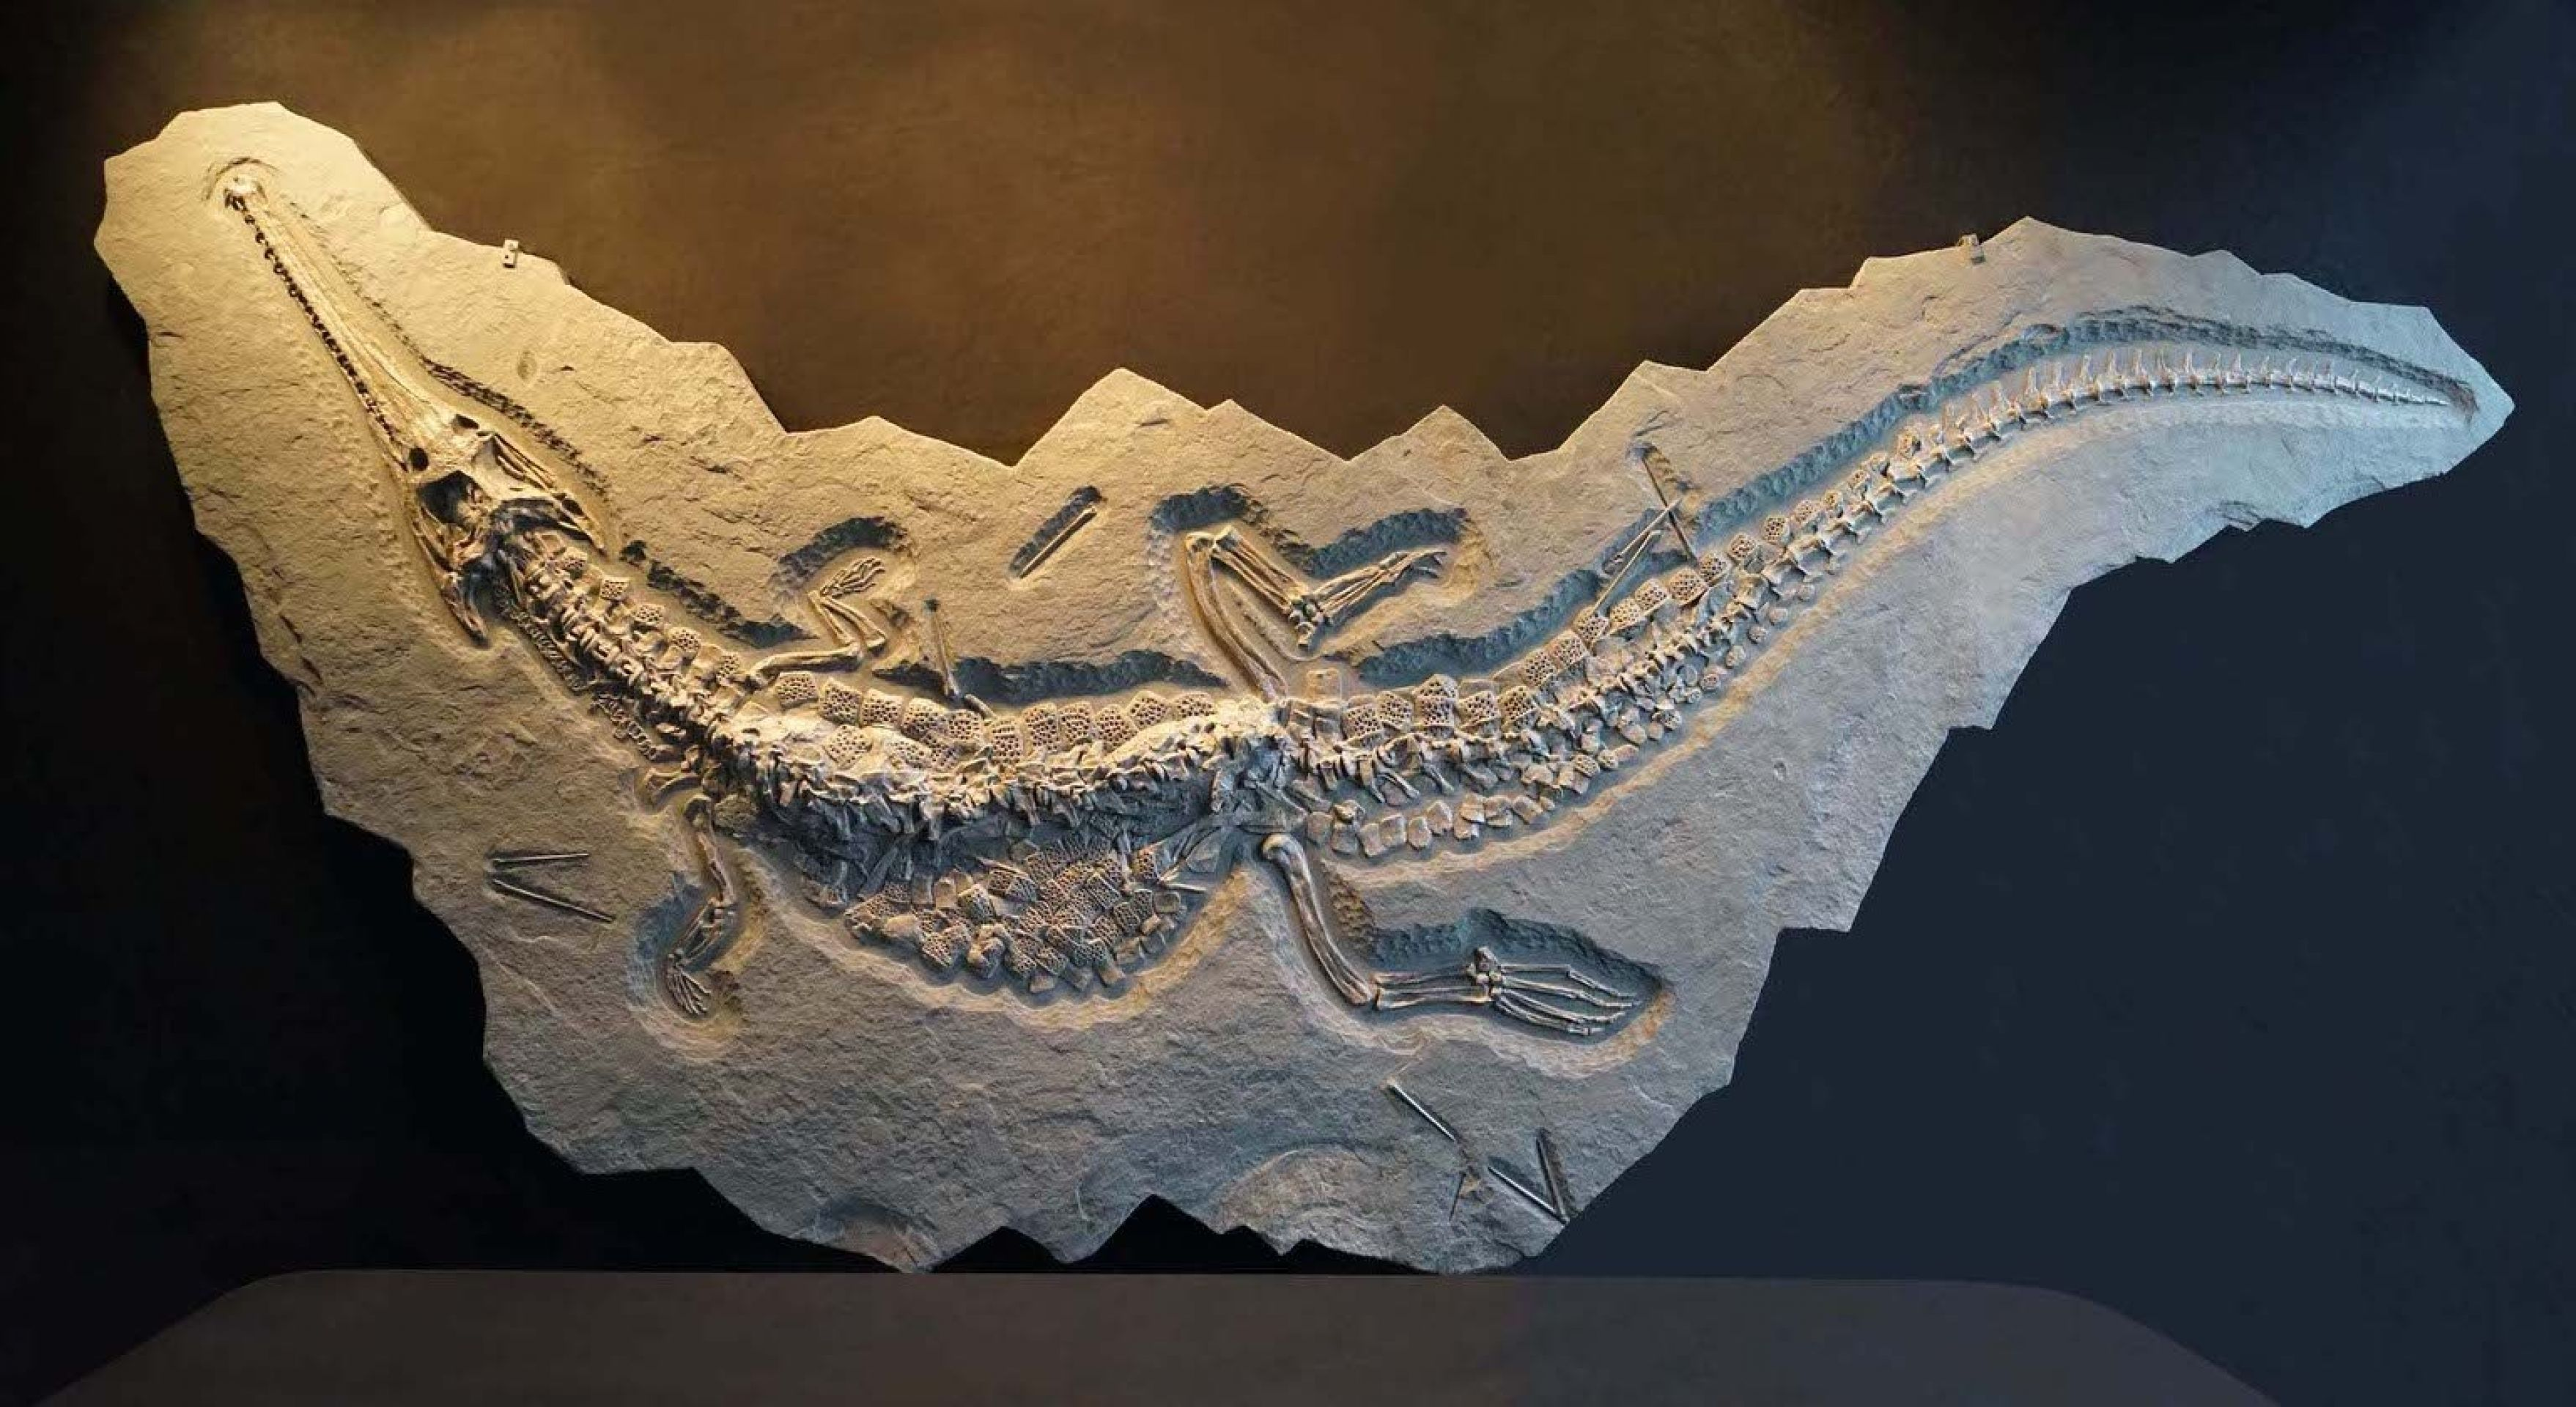 Ultra Rare Fossilized Crocodile Skeleton from Germany - 13.5 Feet Long